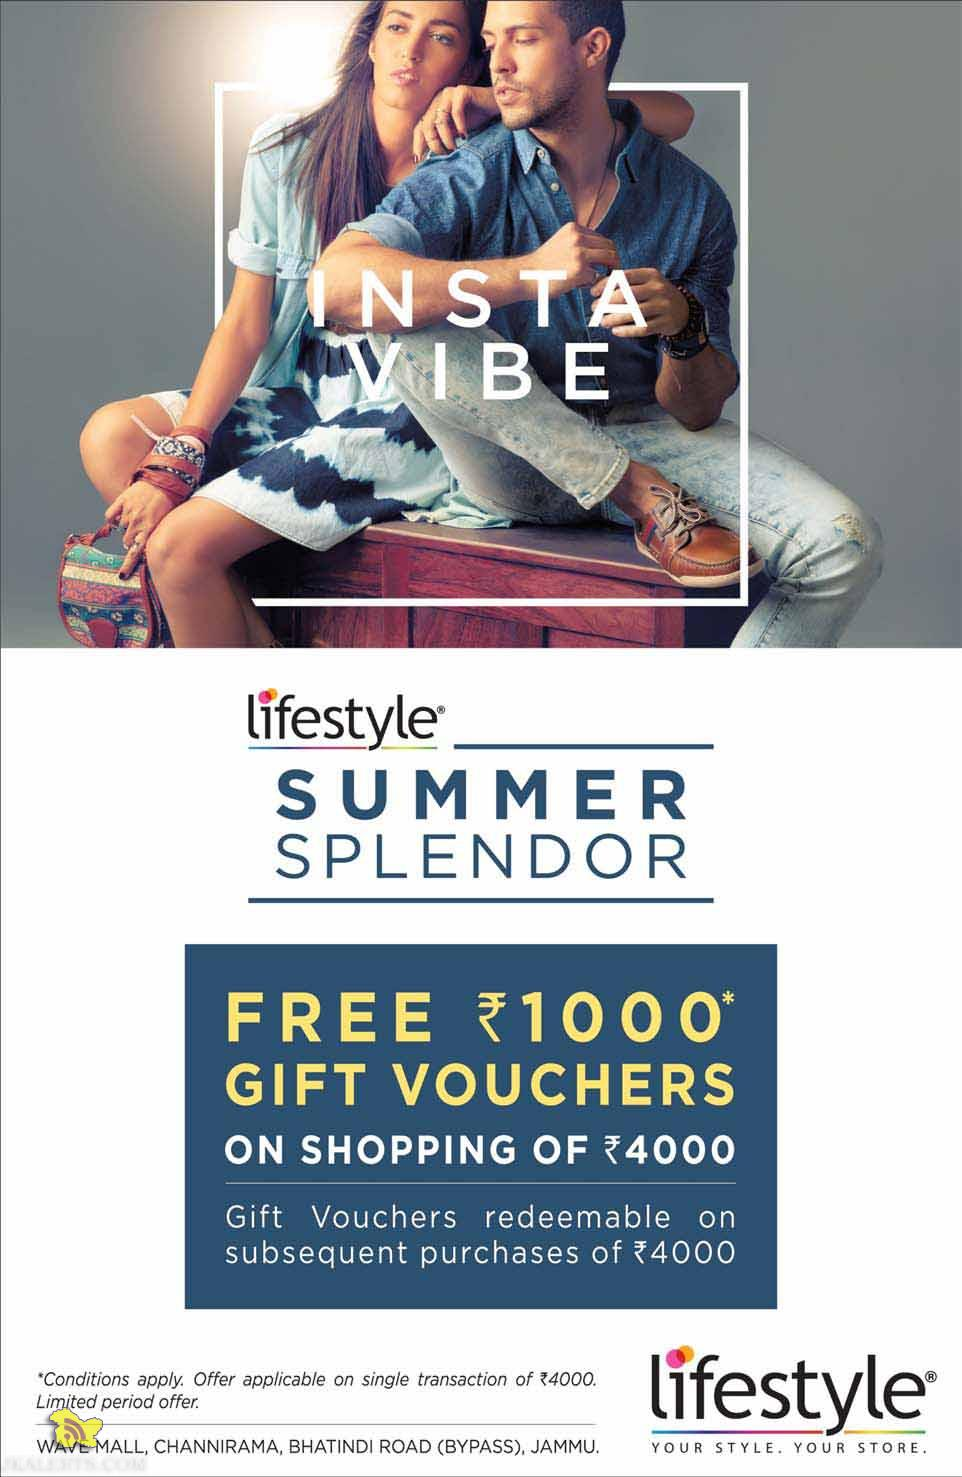 lifestyle SUMMER SPLENDOR offer in wave mall